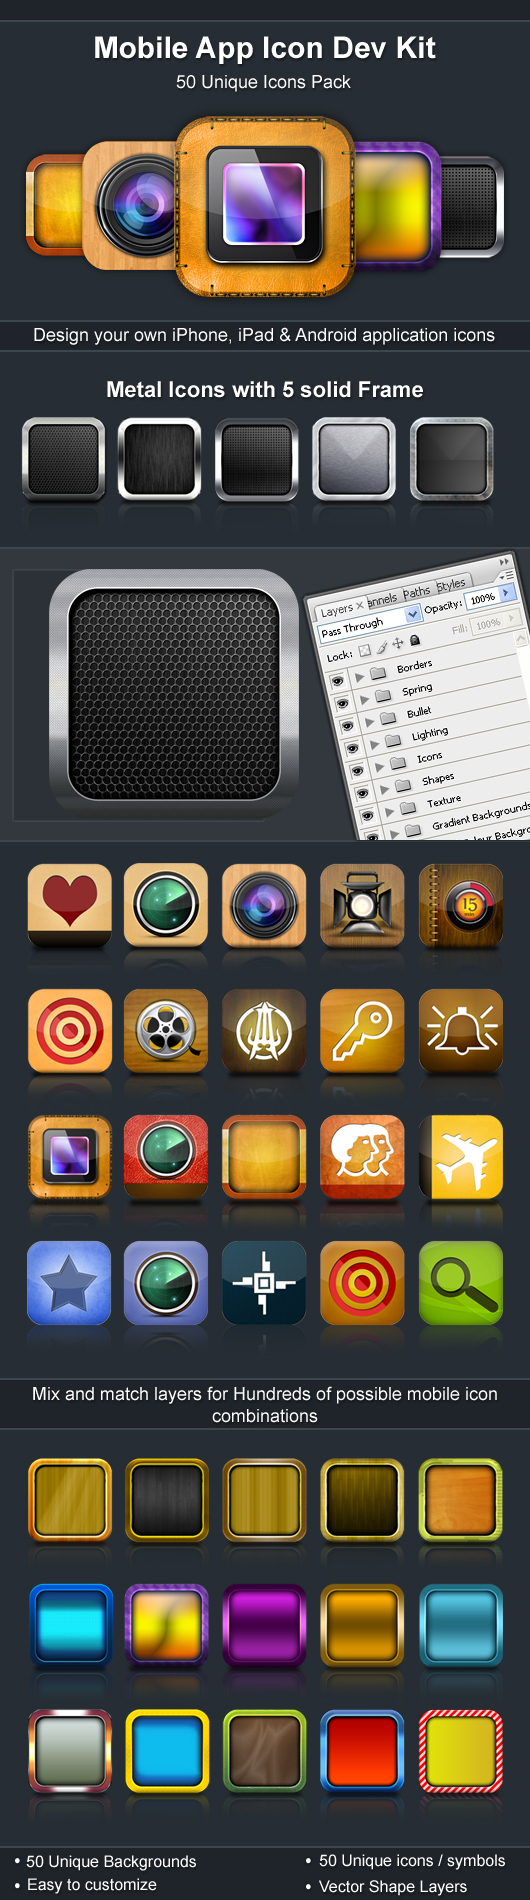 mobile_app_icon_dev_kit